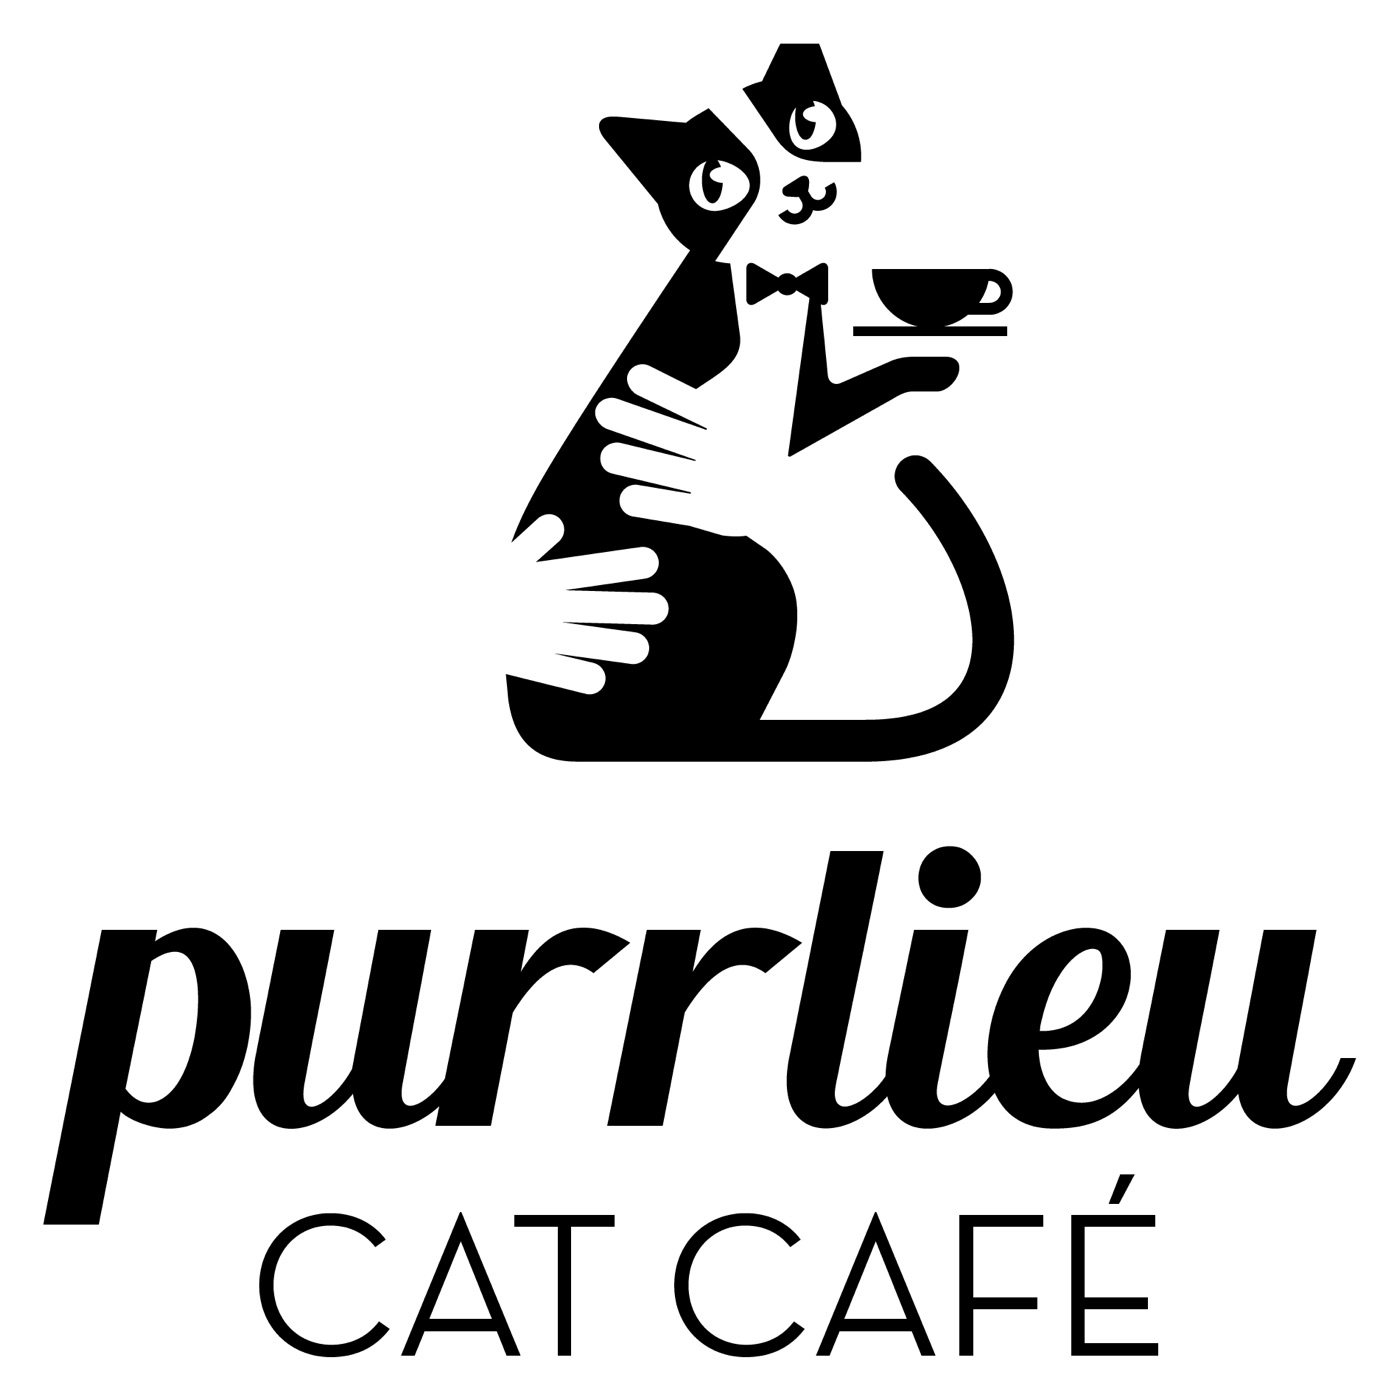 Purrlieu cat cafe